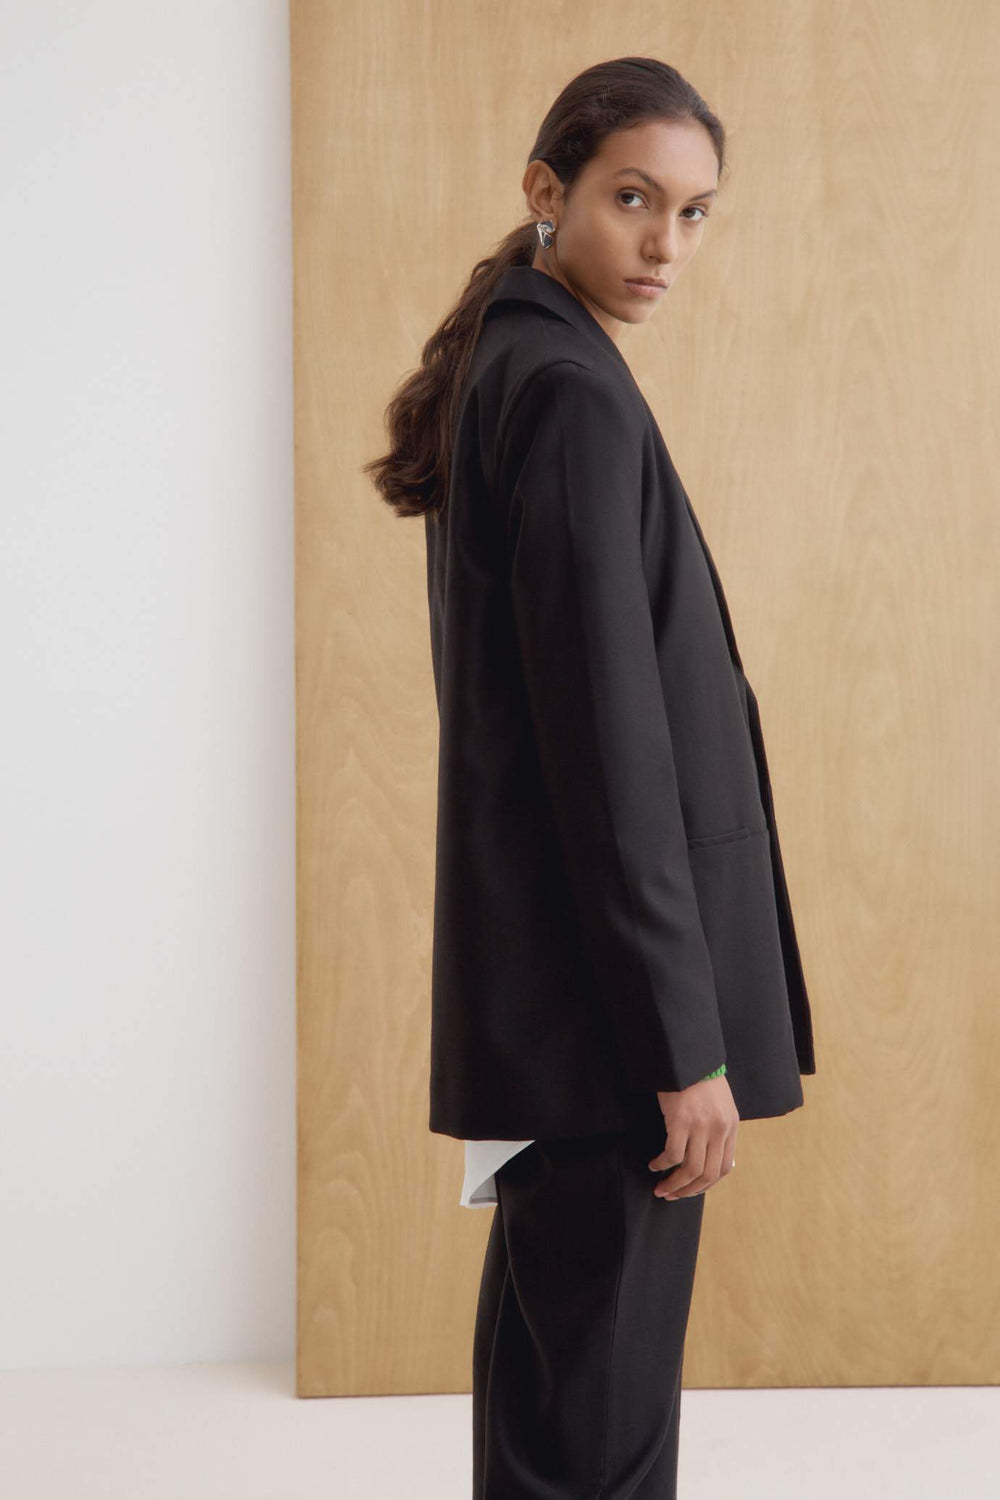 SELECTED KOWTOW ADDED TO OUR SALE